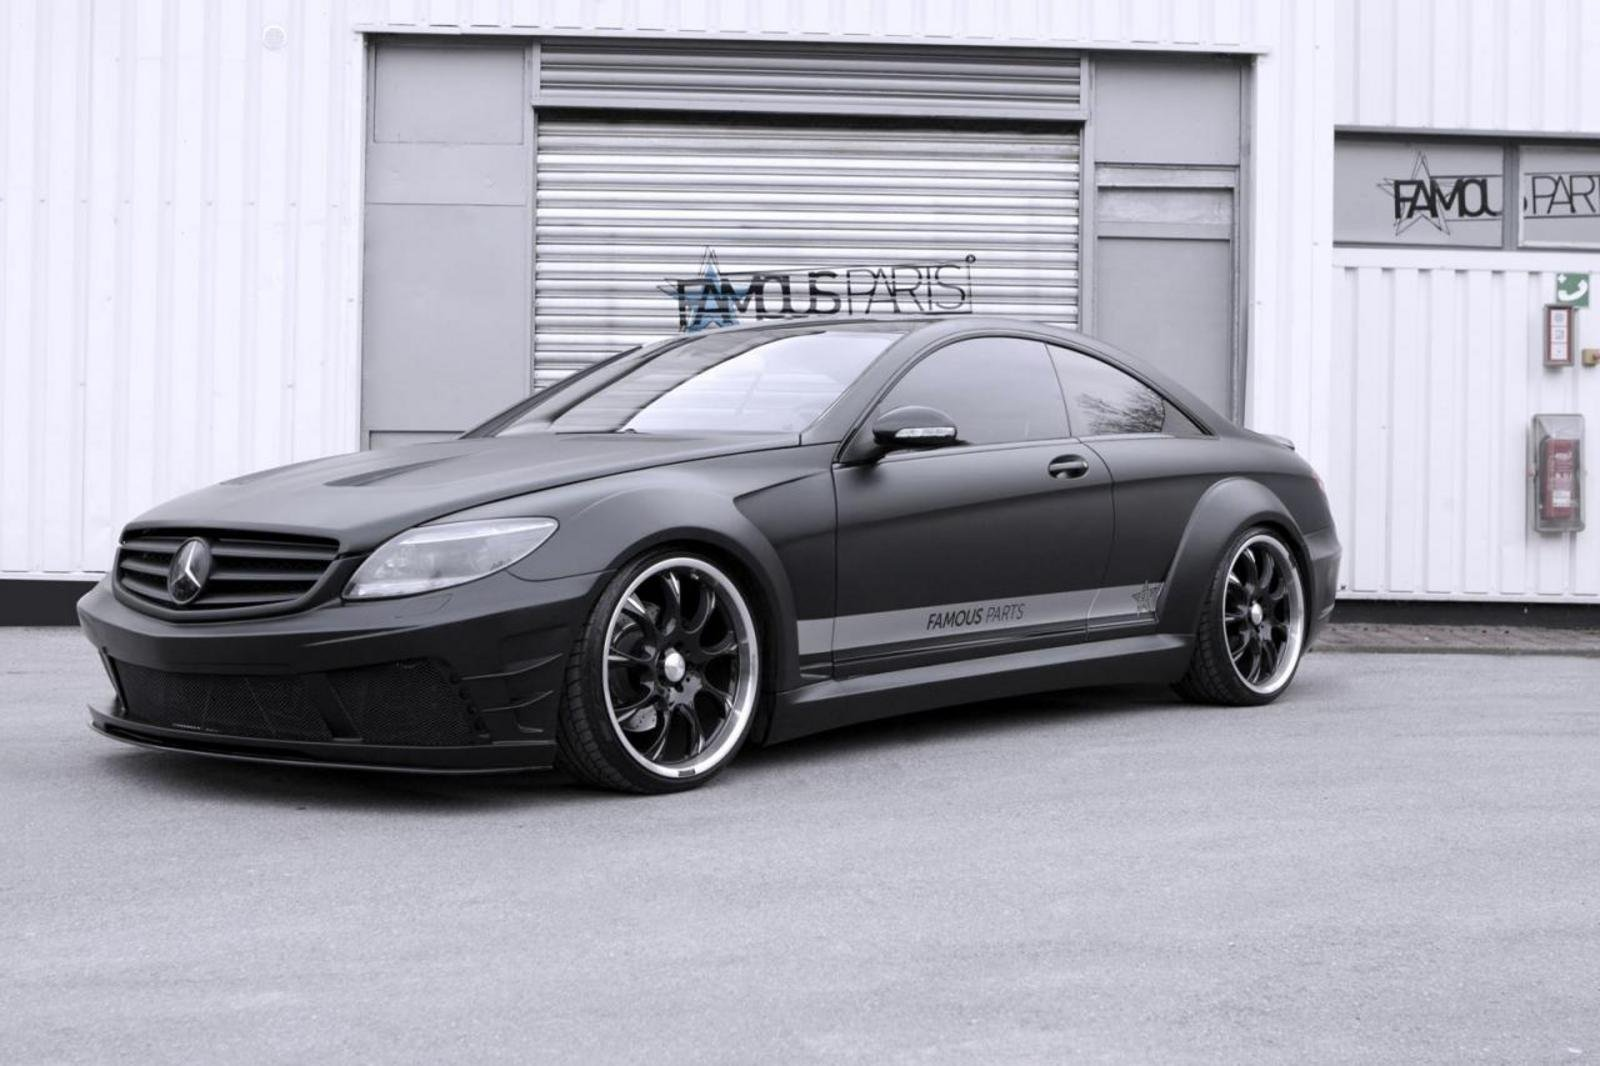 2013 mercedes benz cl 500 black matte edition by famous parts review top speed. Black Bedroom Furniture Sets. Home Design Ideas